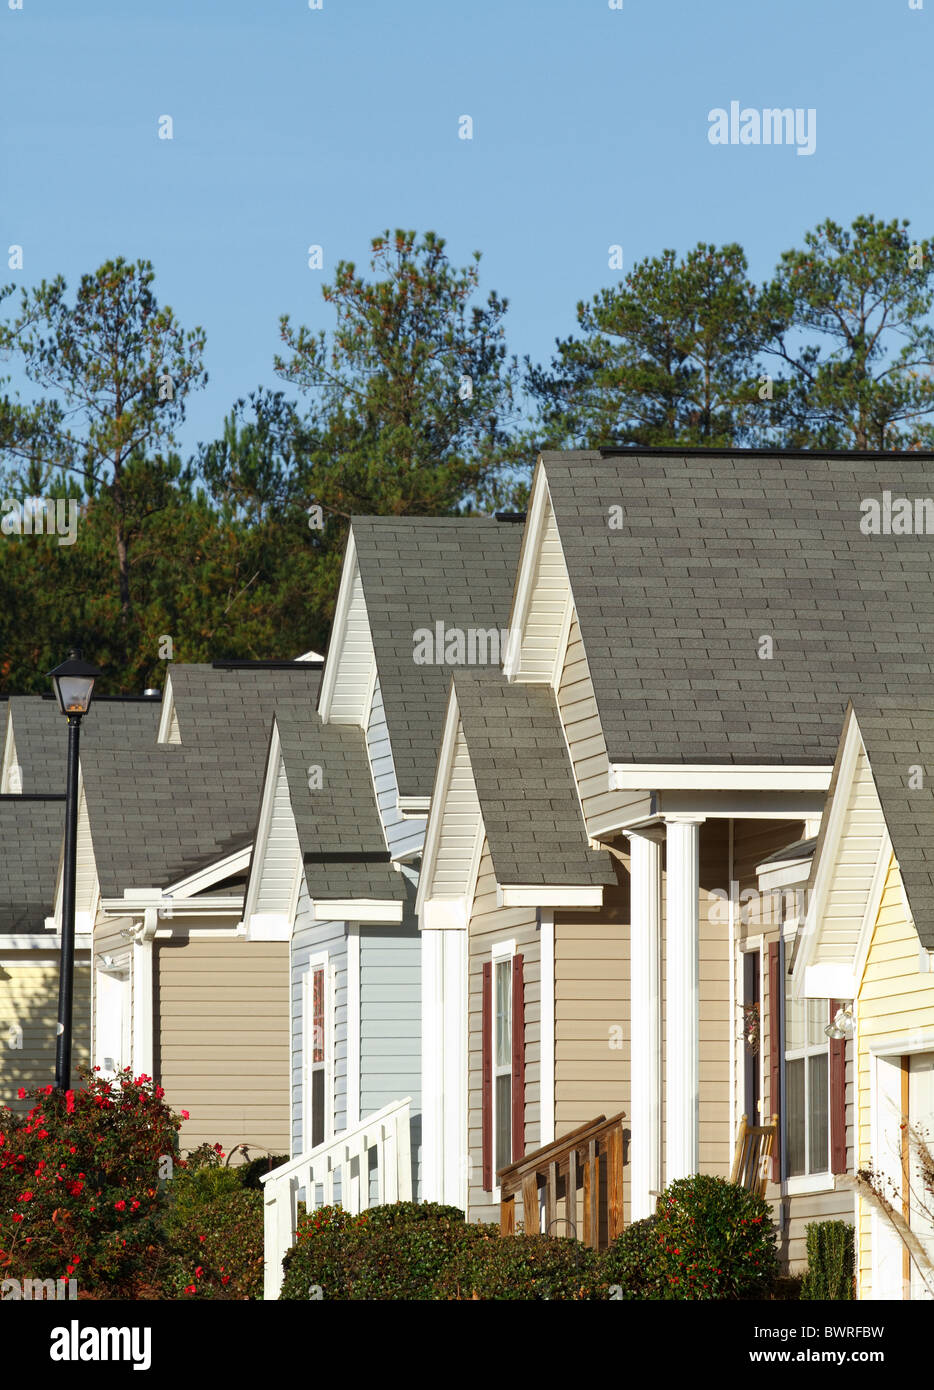 Typical modern middle-class subdivision houses in a housing development in the USA in the Fall season. Stock Photo